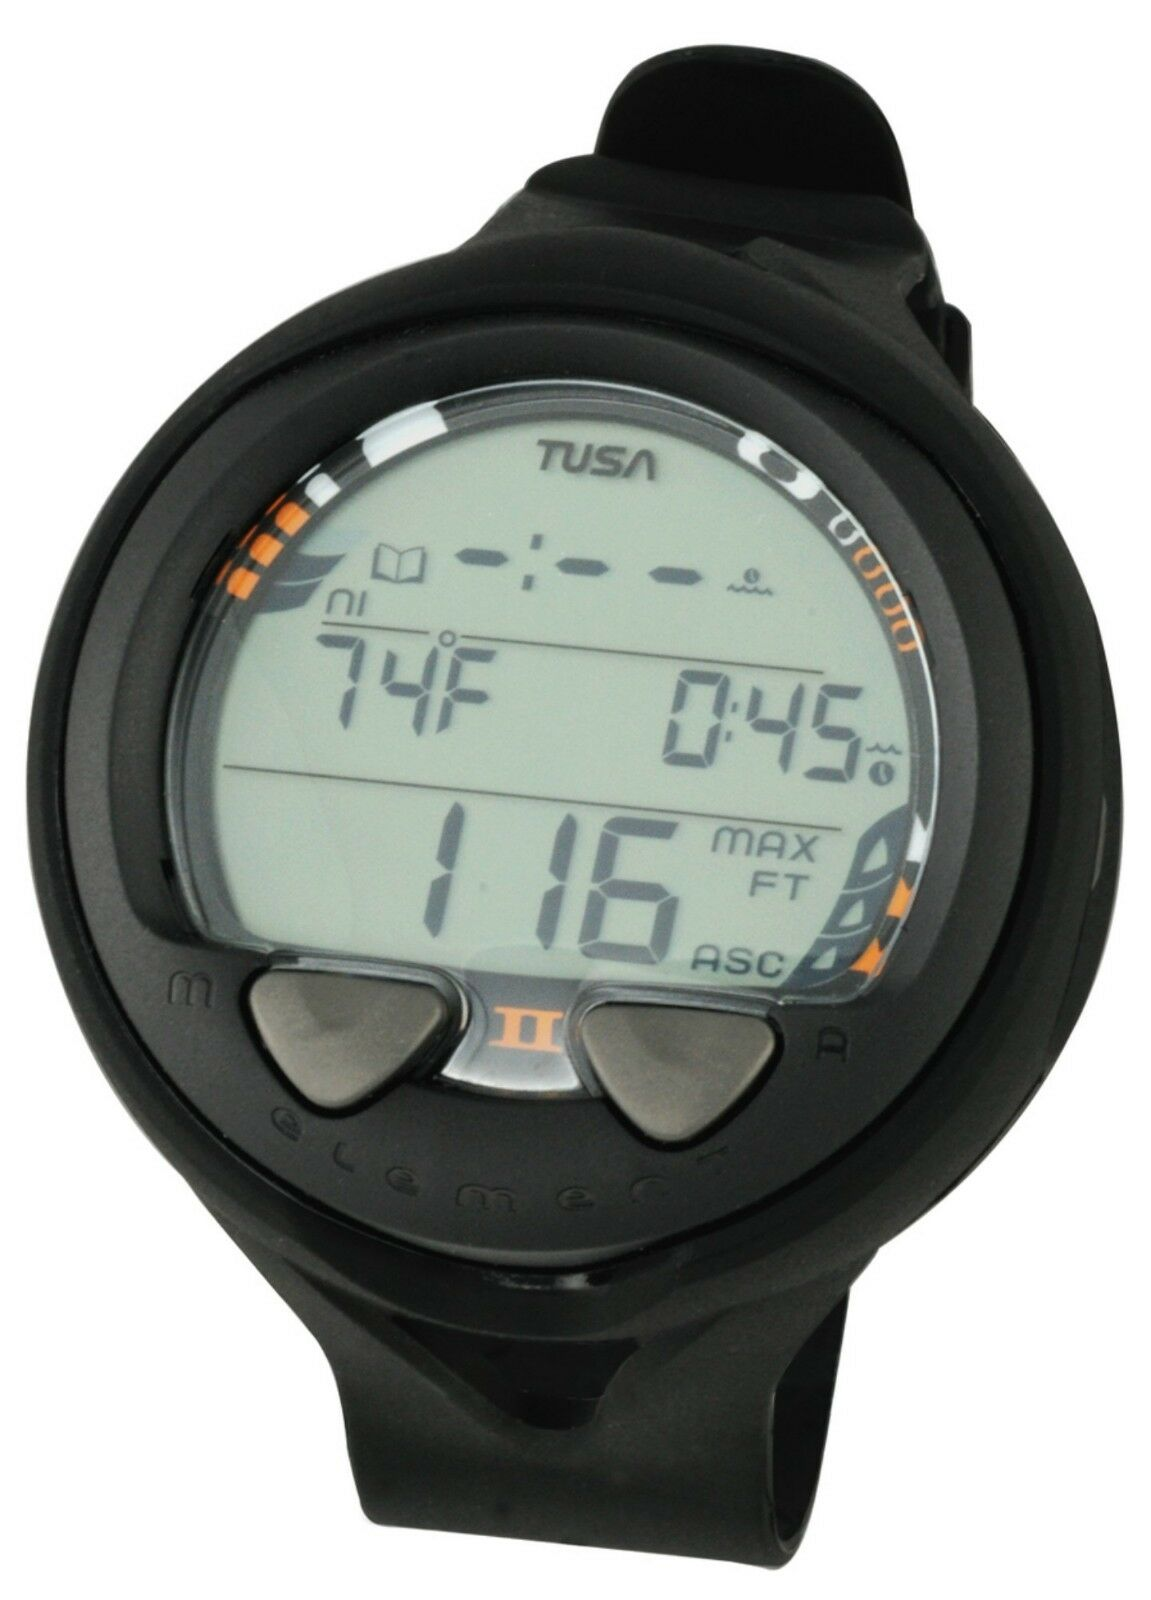 Tusa Element II Dive Computer